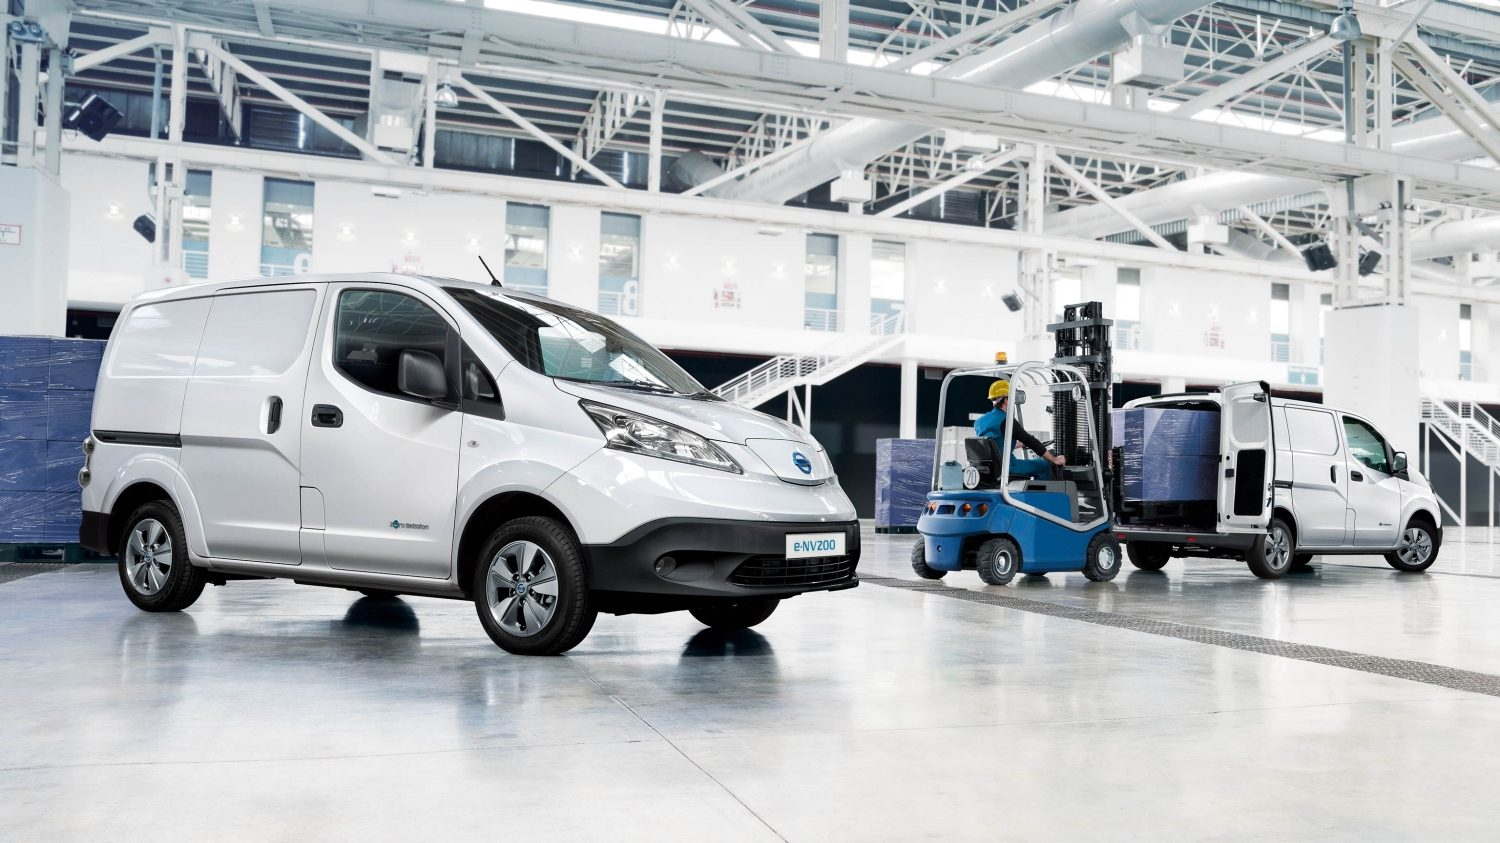 Van | Nissan e-NV200 | Electric van industry use